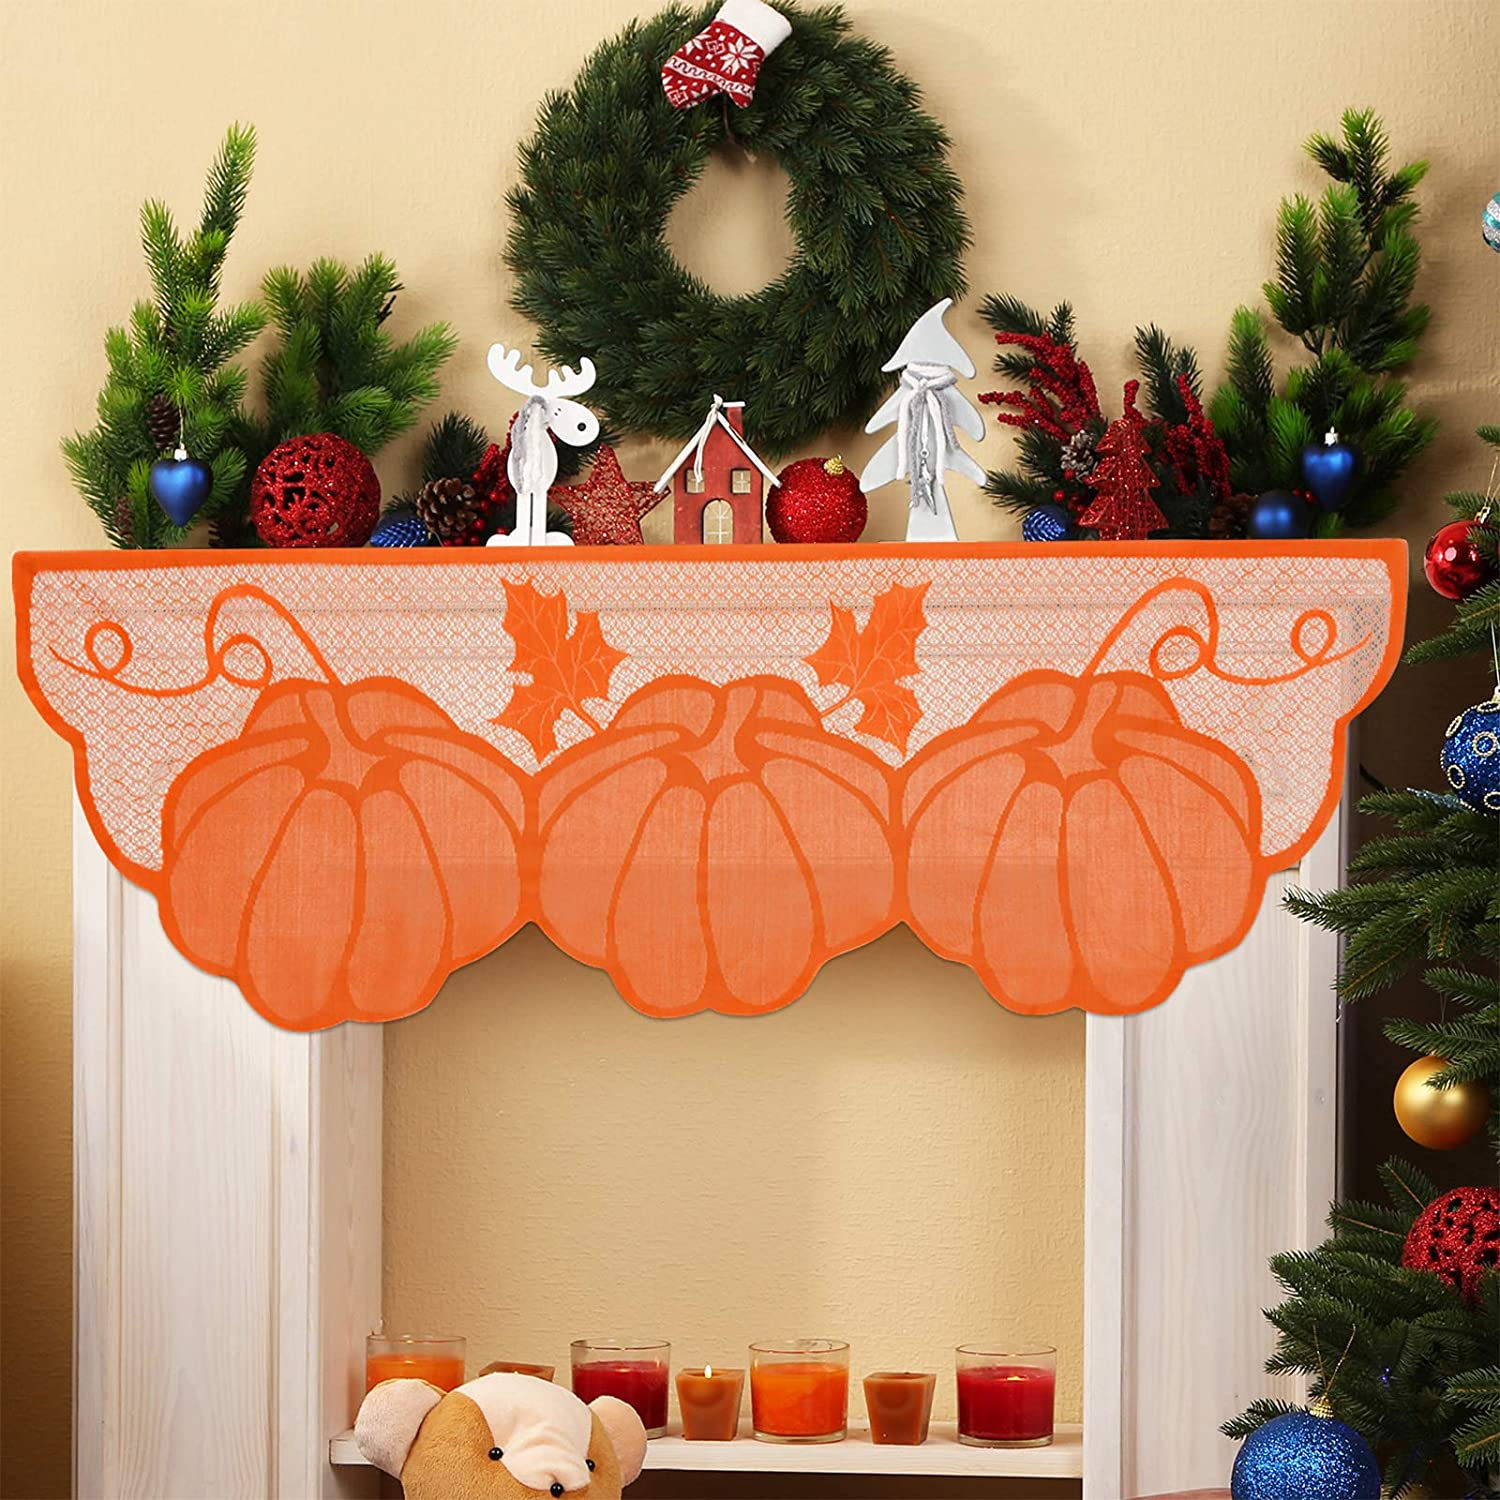 2 Pieces Thanksgiving Decor Lace Fireplace Scarf 20 x 60 Inch Pumpkin Maple Leaves Fall Garland Banner Mantel Scarves Cover Harvest Seasonal Decor for Thanksgiving Door Autumn Table Window Decoration